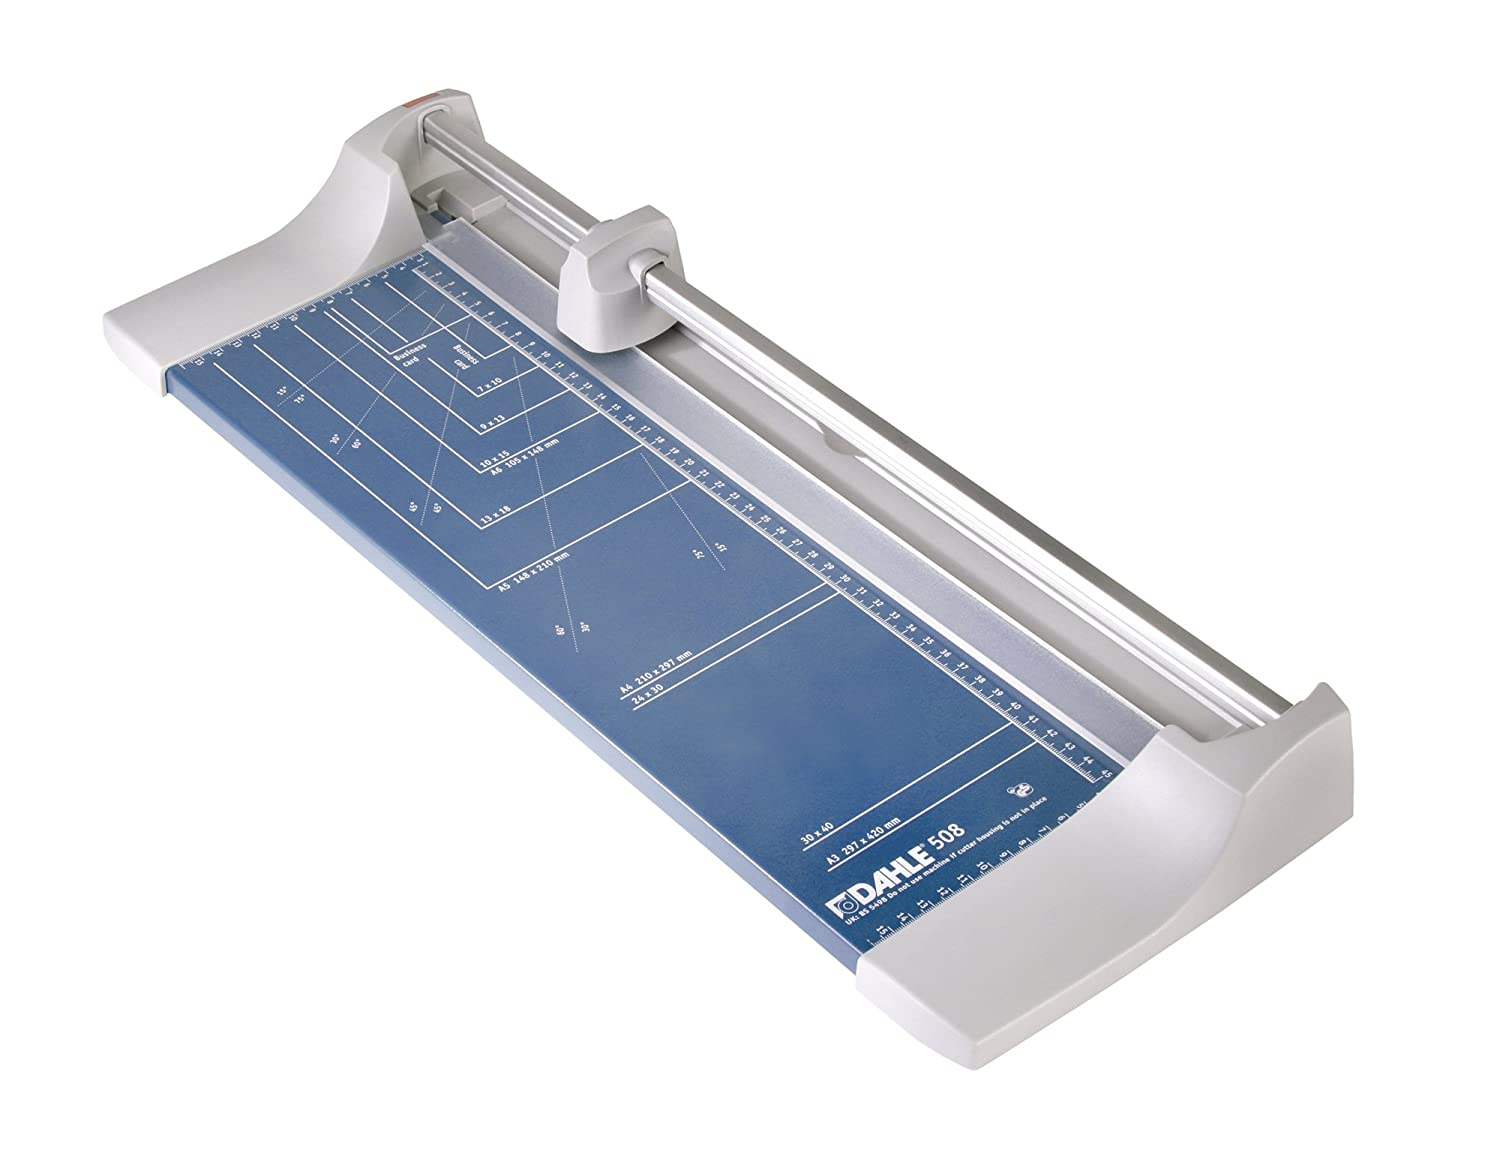 Dahle A3 Personal Trimmer 460mm Cutting Length/ 0.6mm Cutting Capacity - Blue DH508